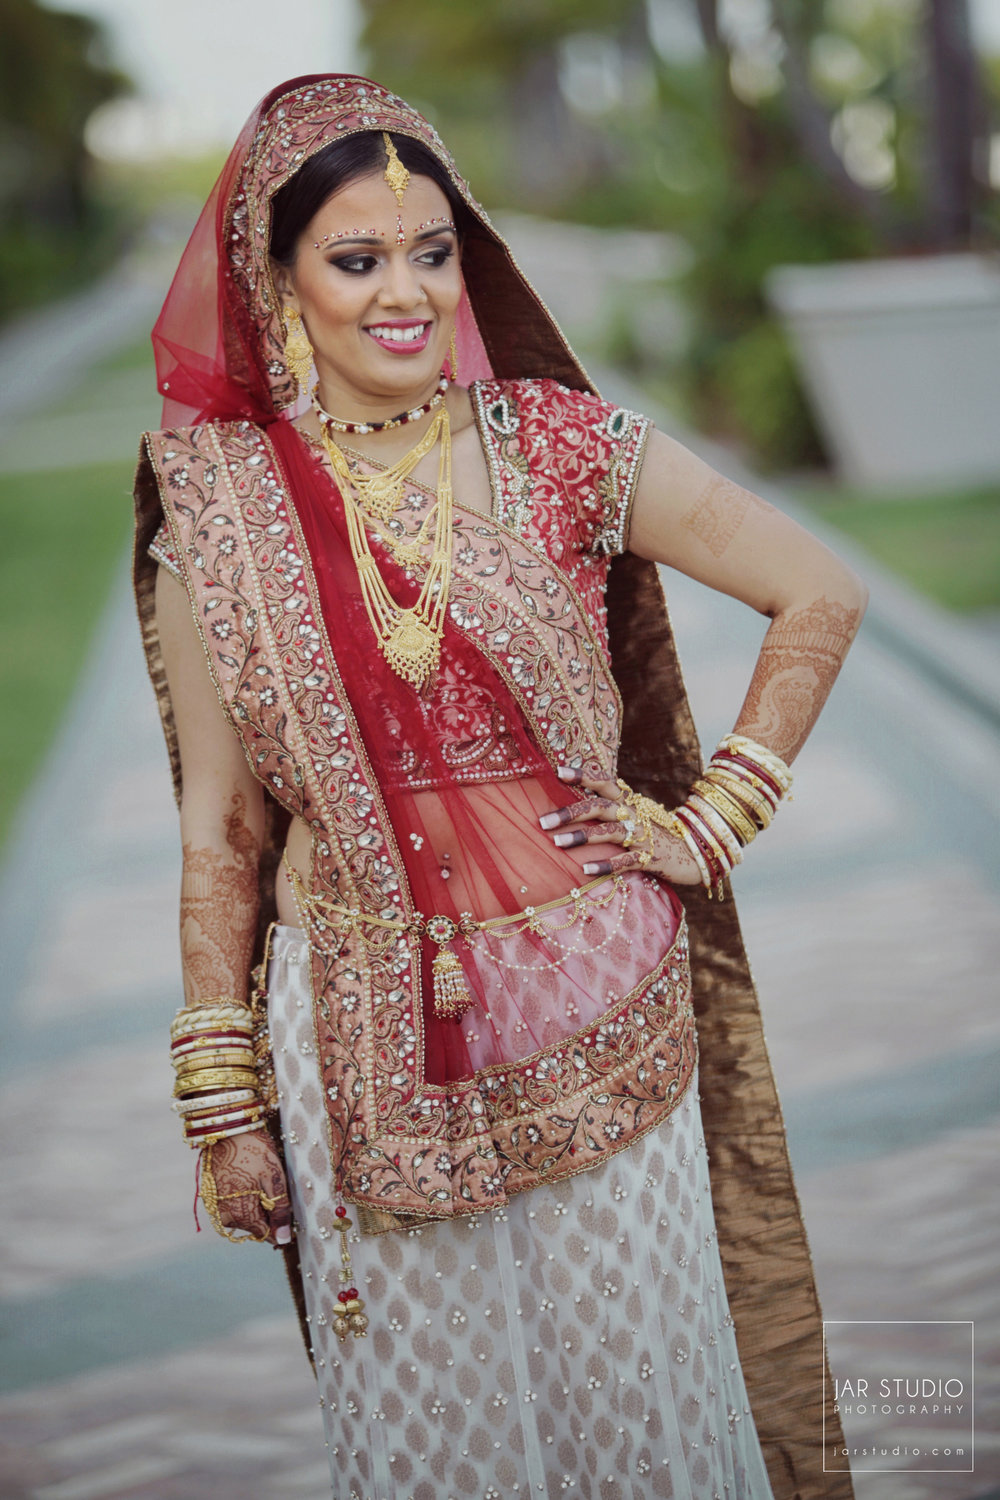 19-bride-saree-jarstudio-indian-weddings-photography-orlando-fl.JPG